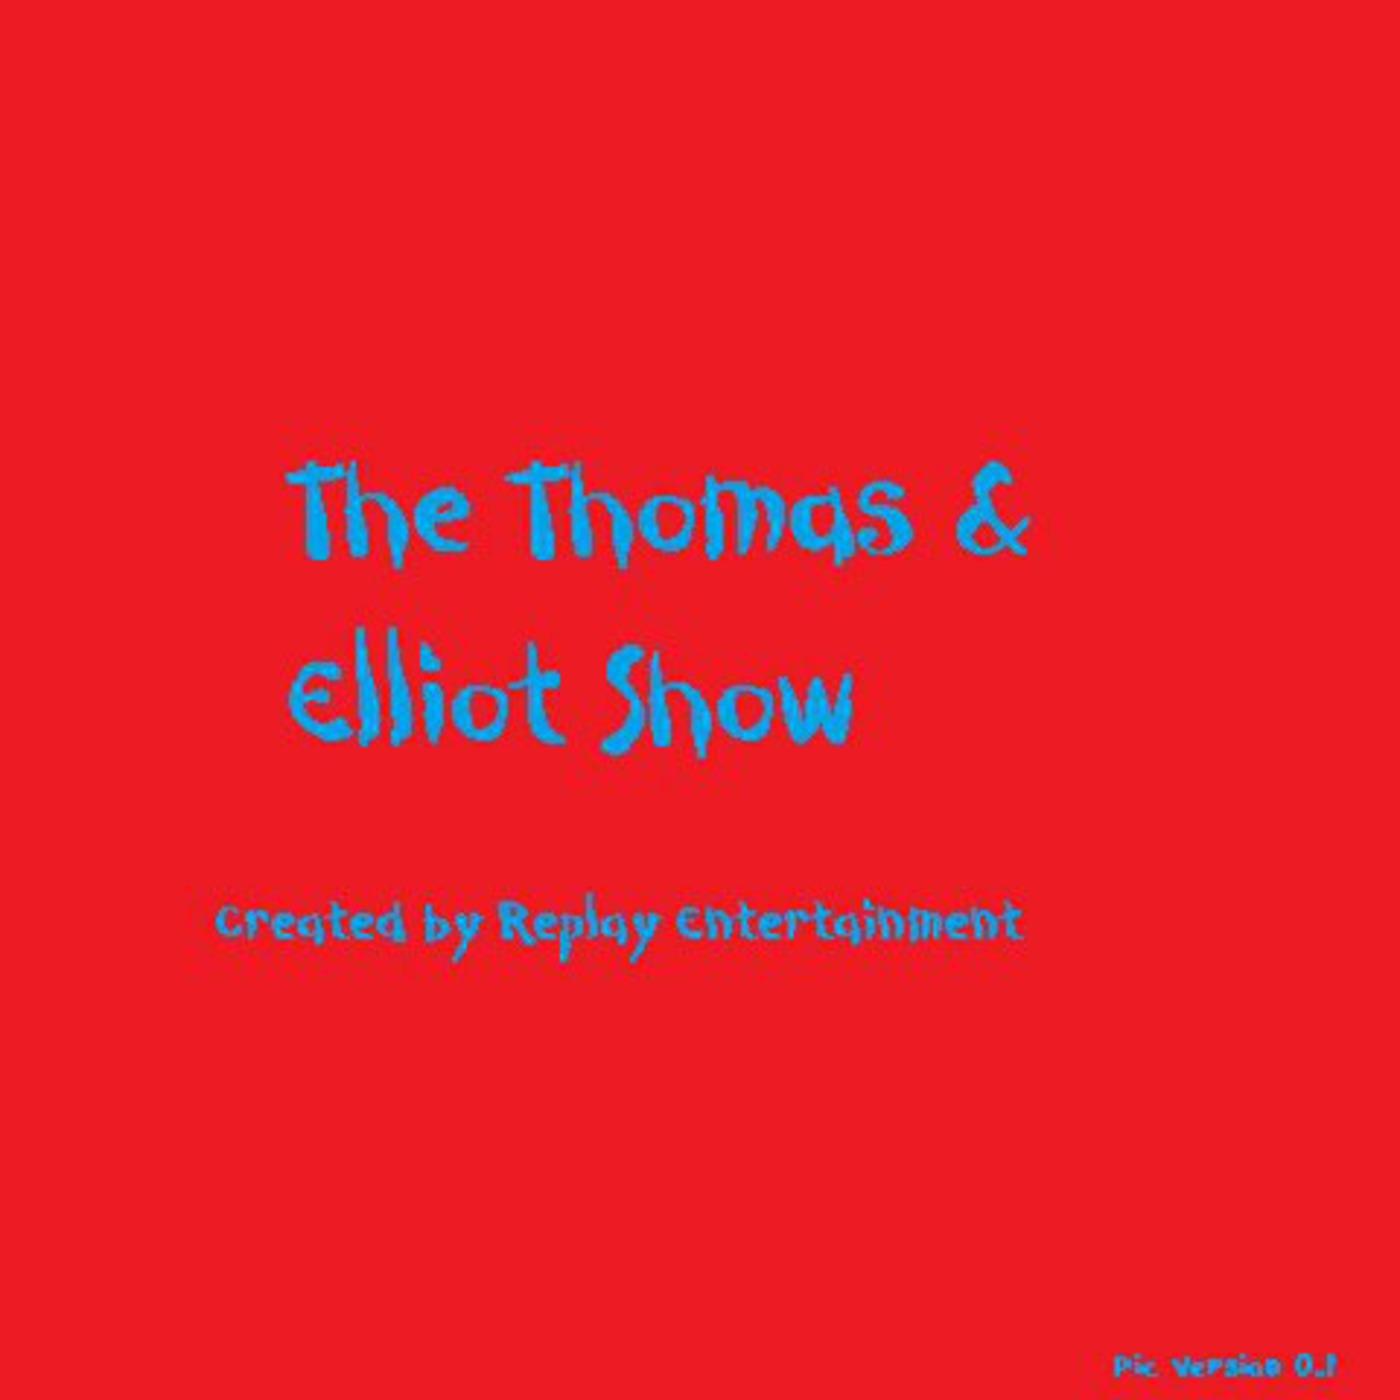 The Thomas & Elliot Show